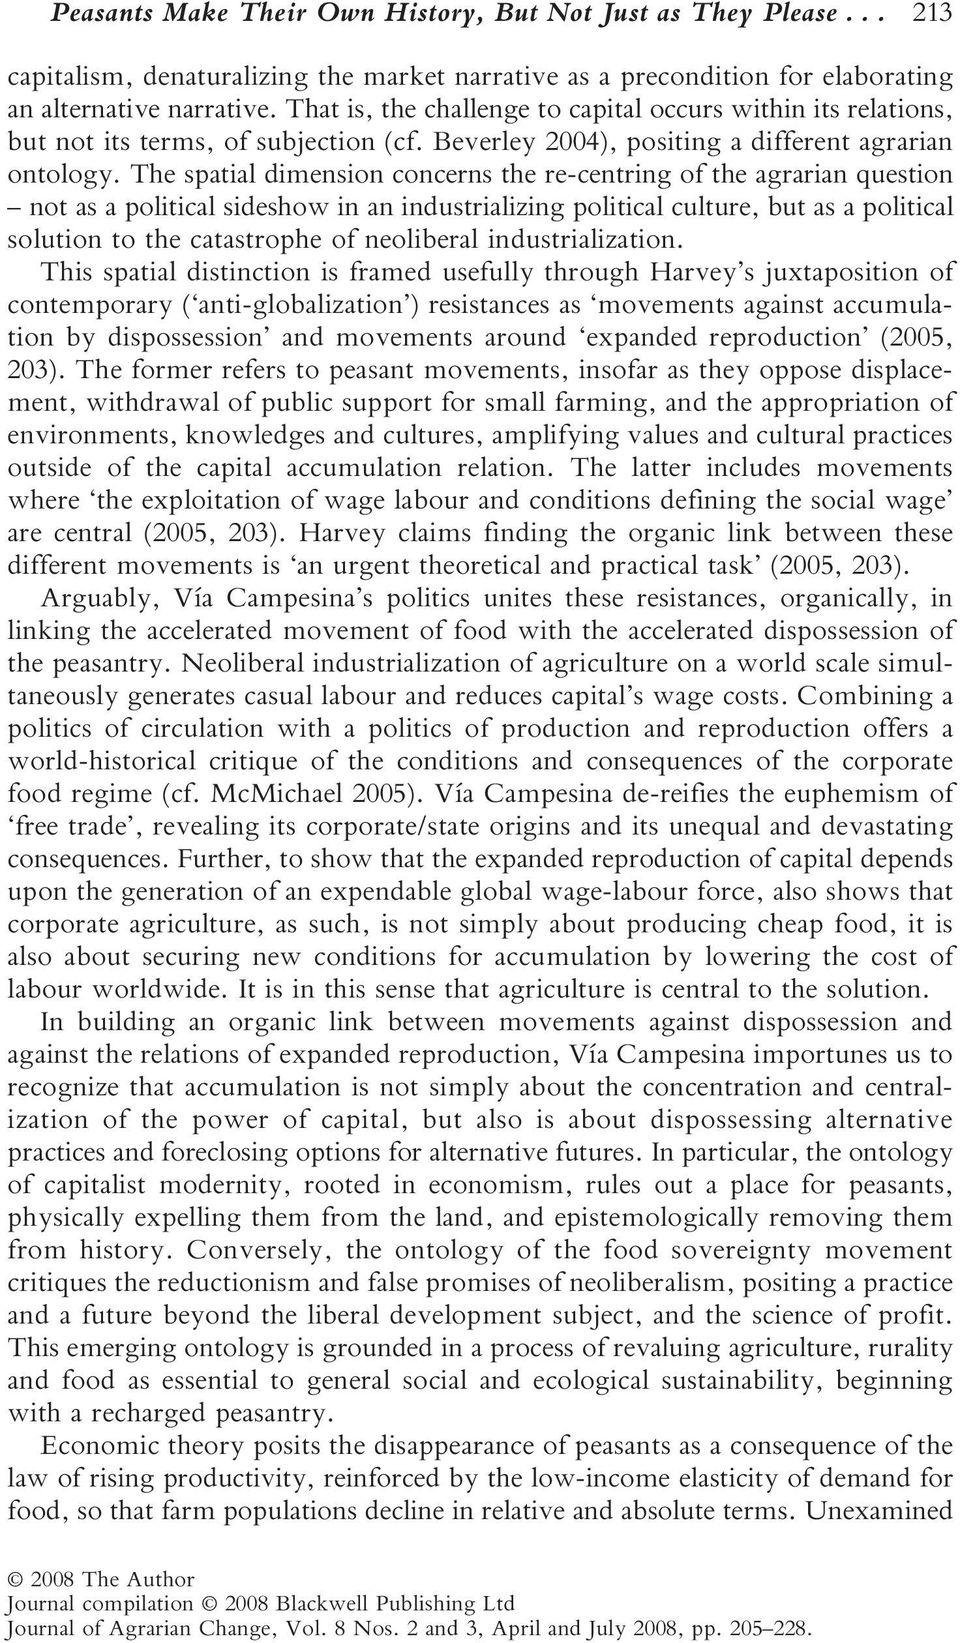 The spatial dimension concerns the re-centring of the agrarian question not as a political sideshow in an industrializing political culture, but as a political solution to the catastrophe of